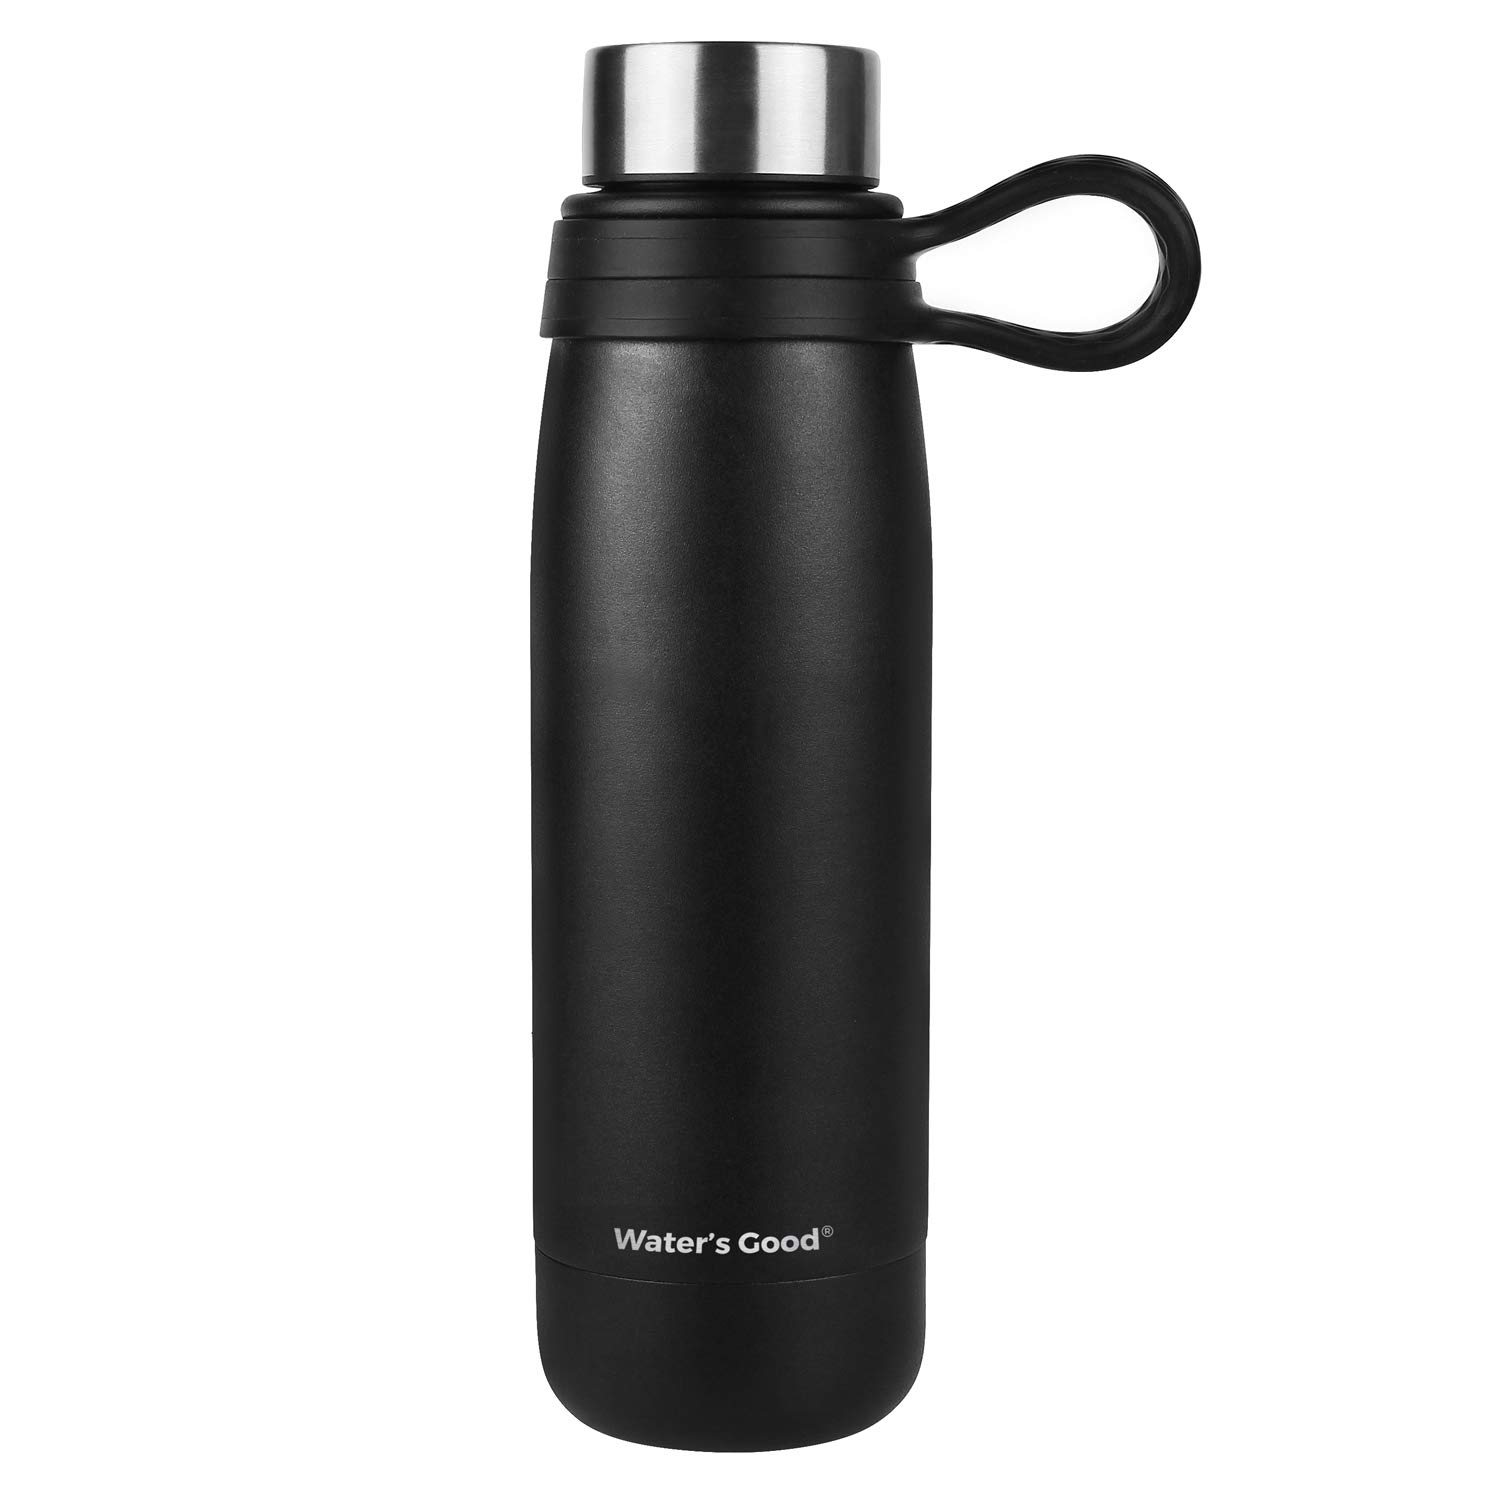 WATER'S GOOD Stainless Steel Vacuum Insulated Water Bottle with Handle, 18 oz Steel Cap Easy Drinking Bottles Black, Keeps Drinks Hot 12 Hours Cold 24 Hours